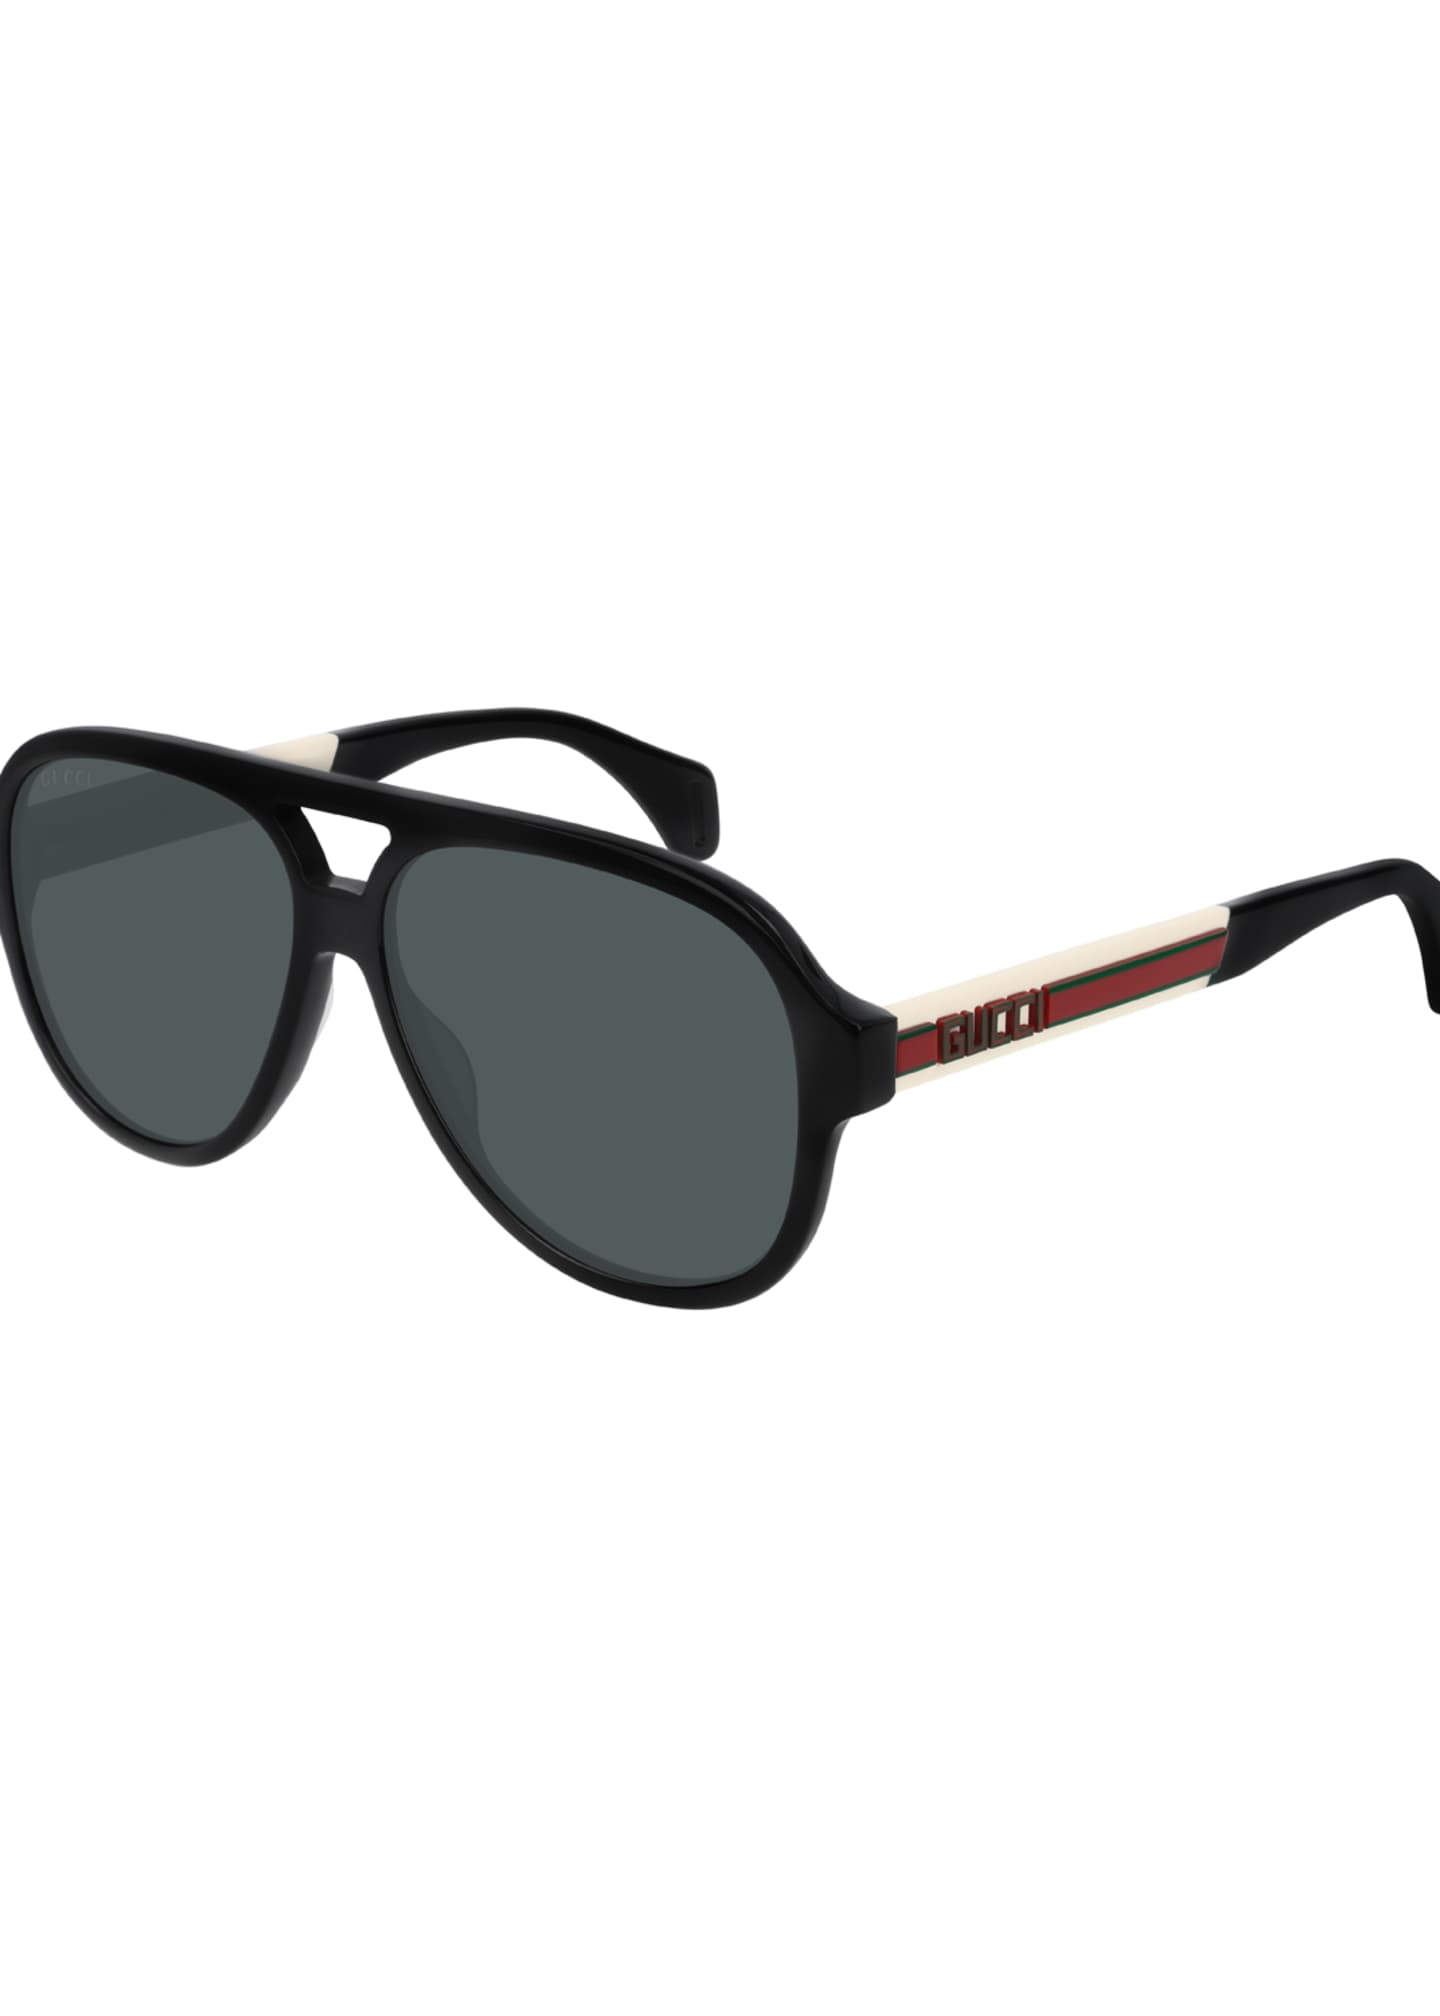 Gucci Men's Polarized Nylon Pilot Sunglasses